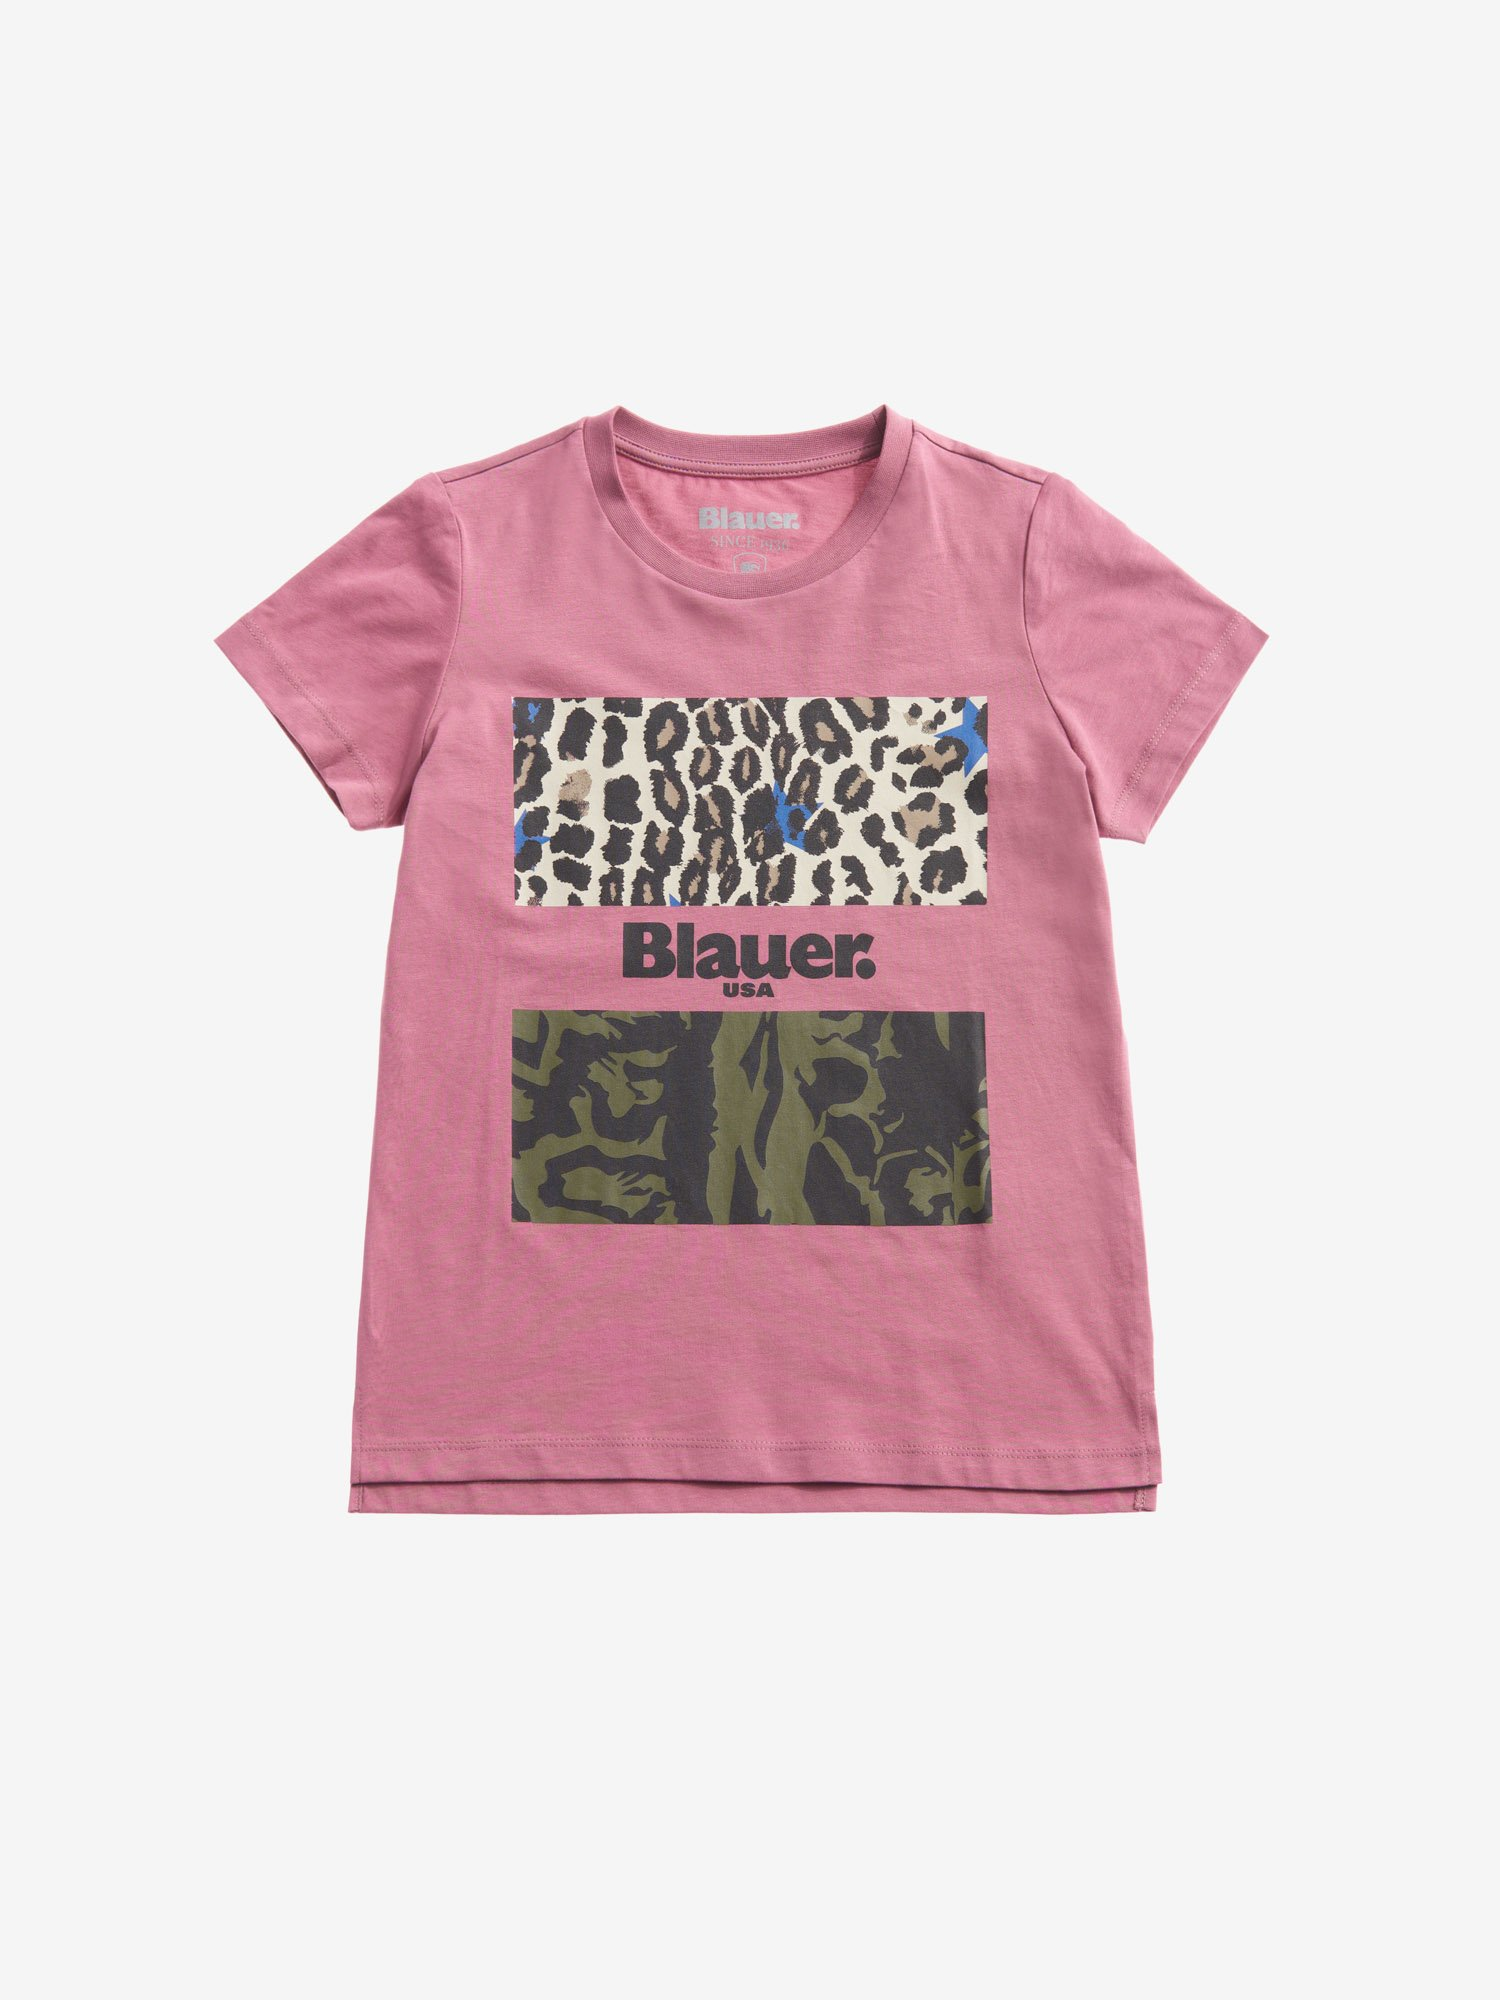 Blauer - CAMOUFLAGE ANIMALIER T-SHIRT - Pink Heather - Blauer